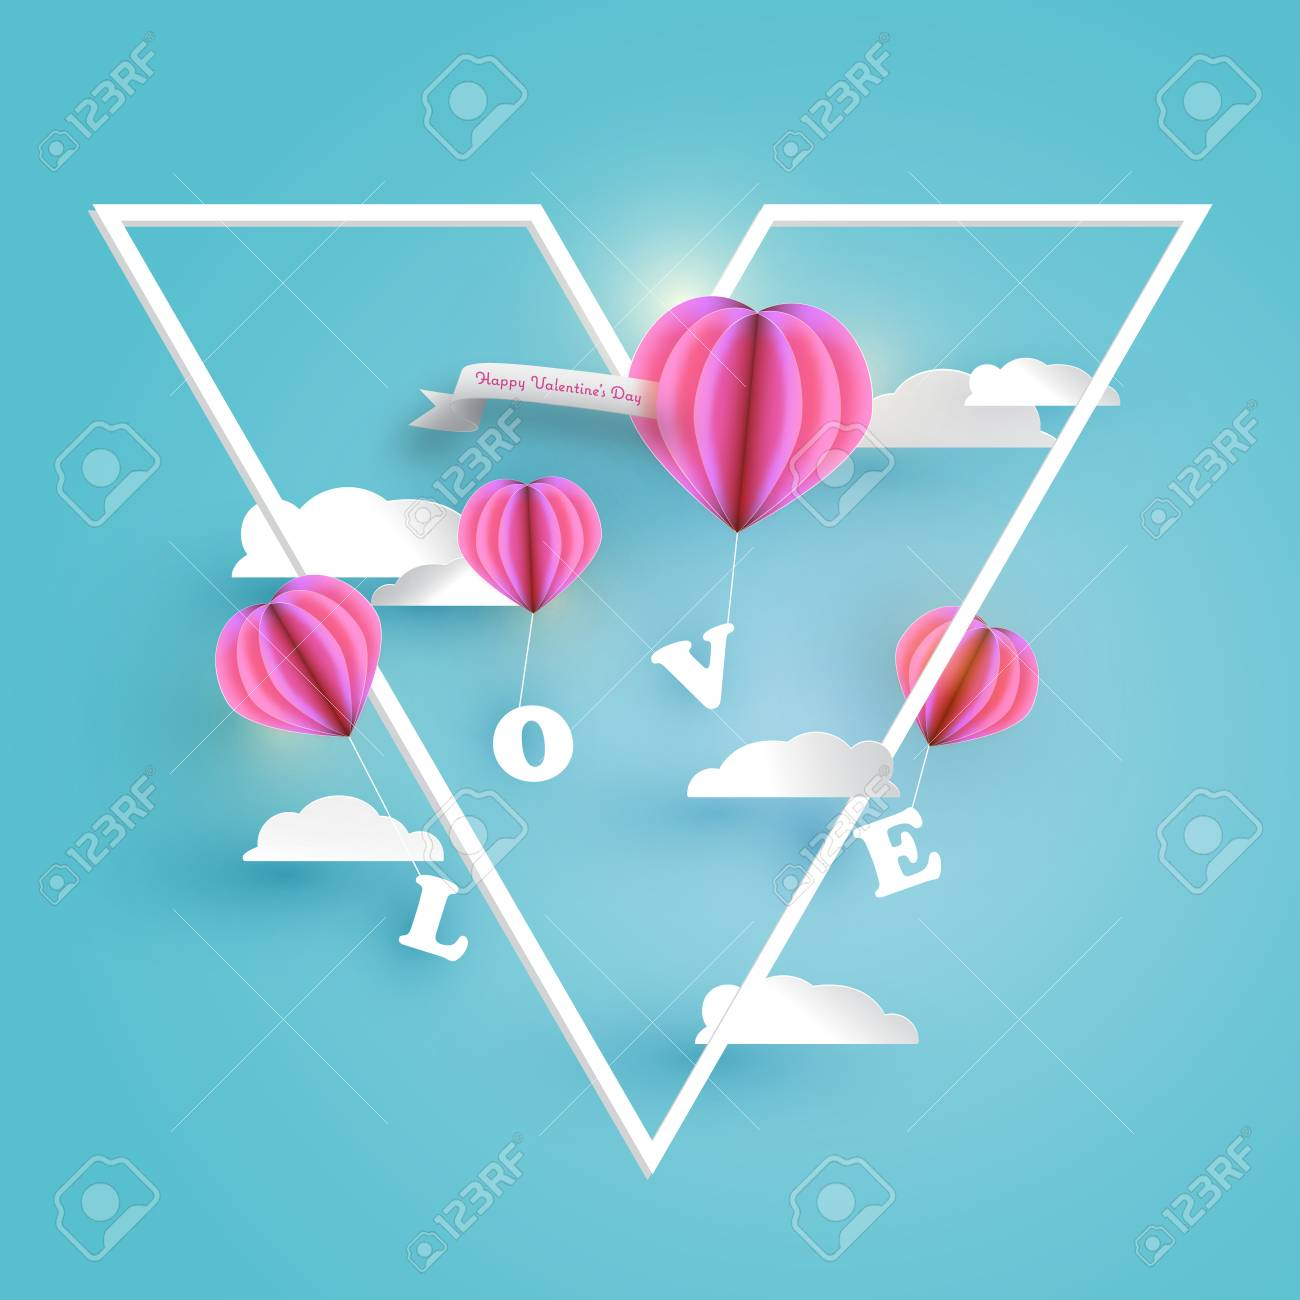 Abstract Pink Heart Hot Air Balloons Carrying Love Letter In